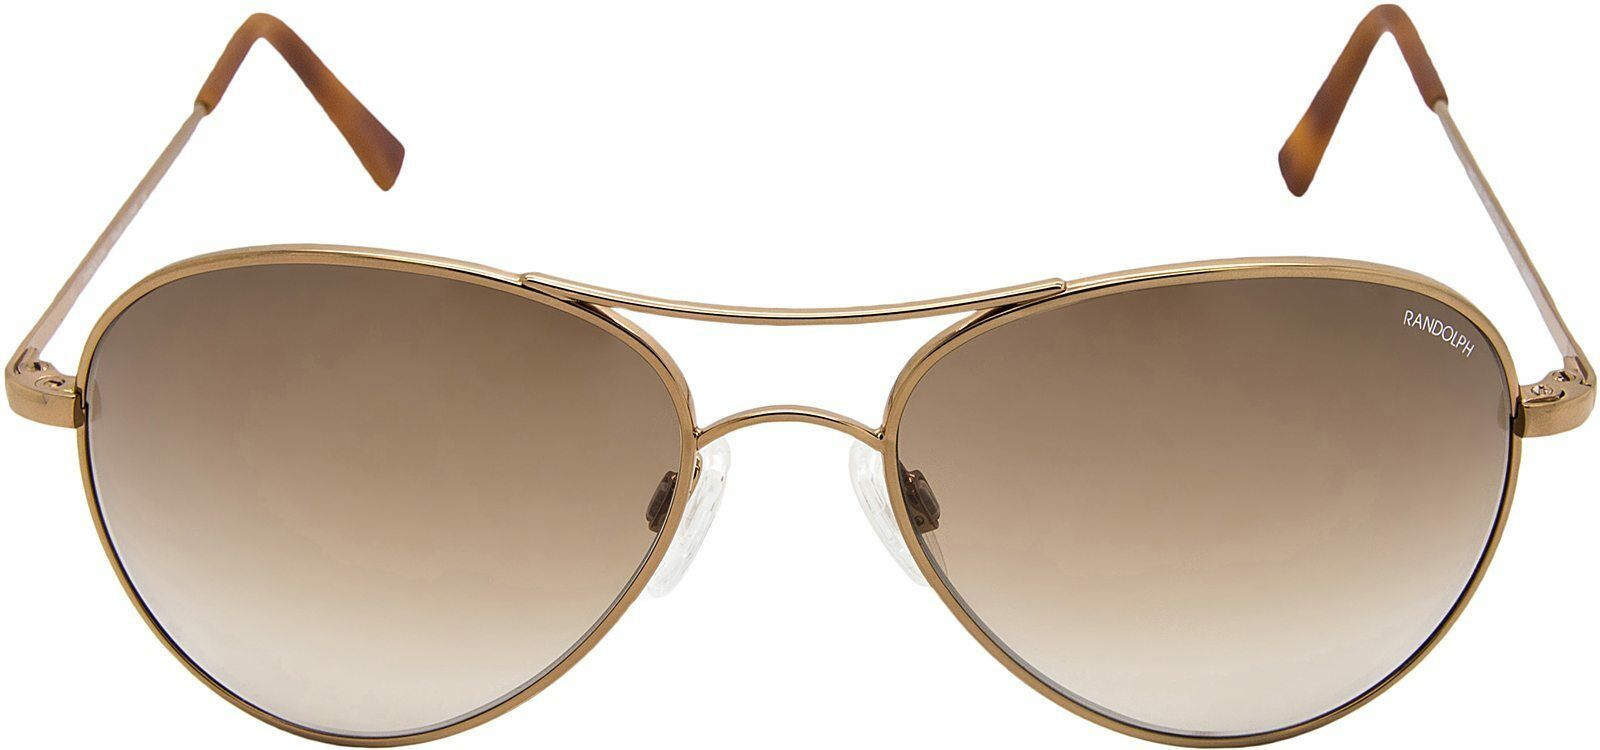 Randolph Amelia Made in USA Sunglasses Tribute to Amelia Erhart